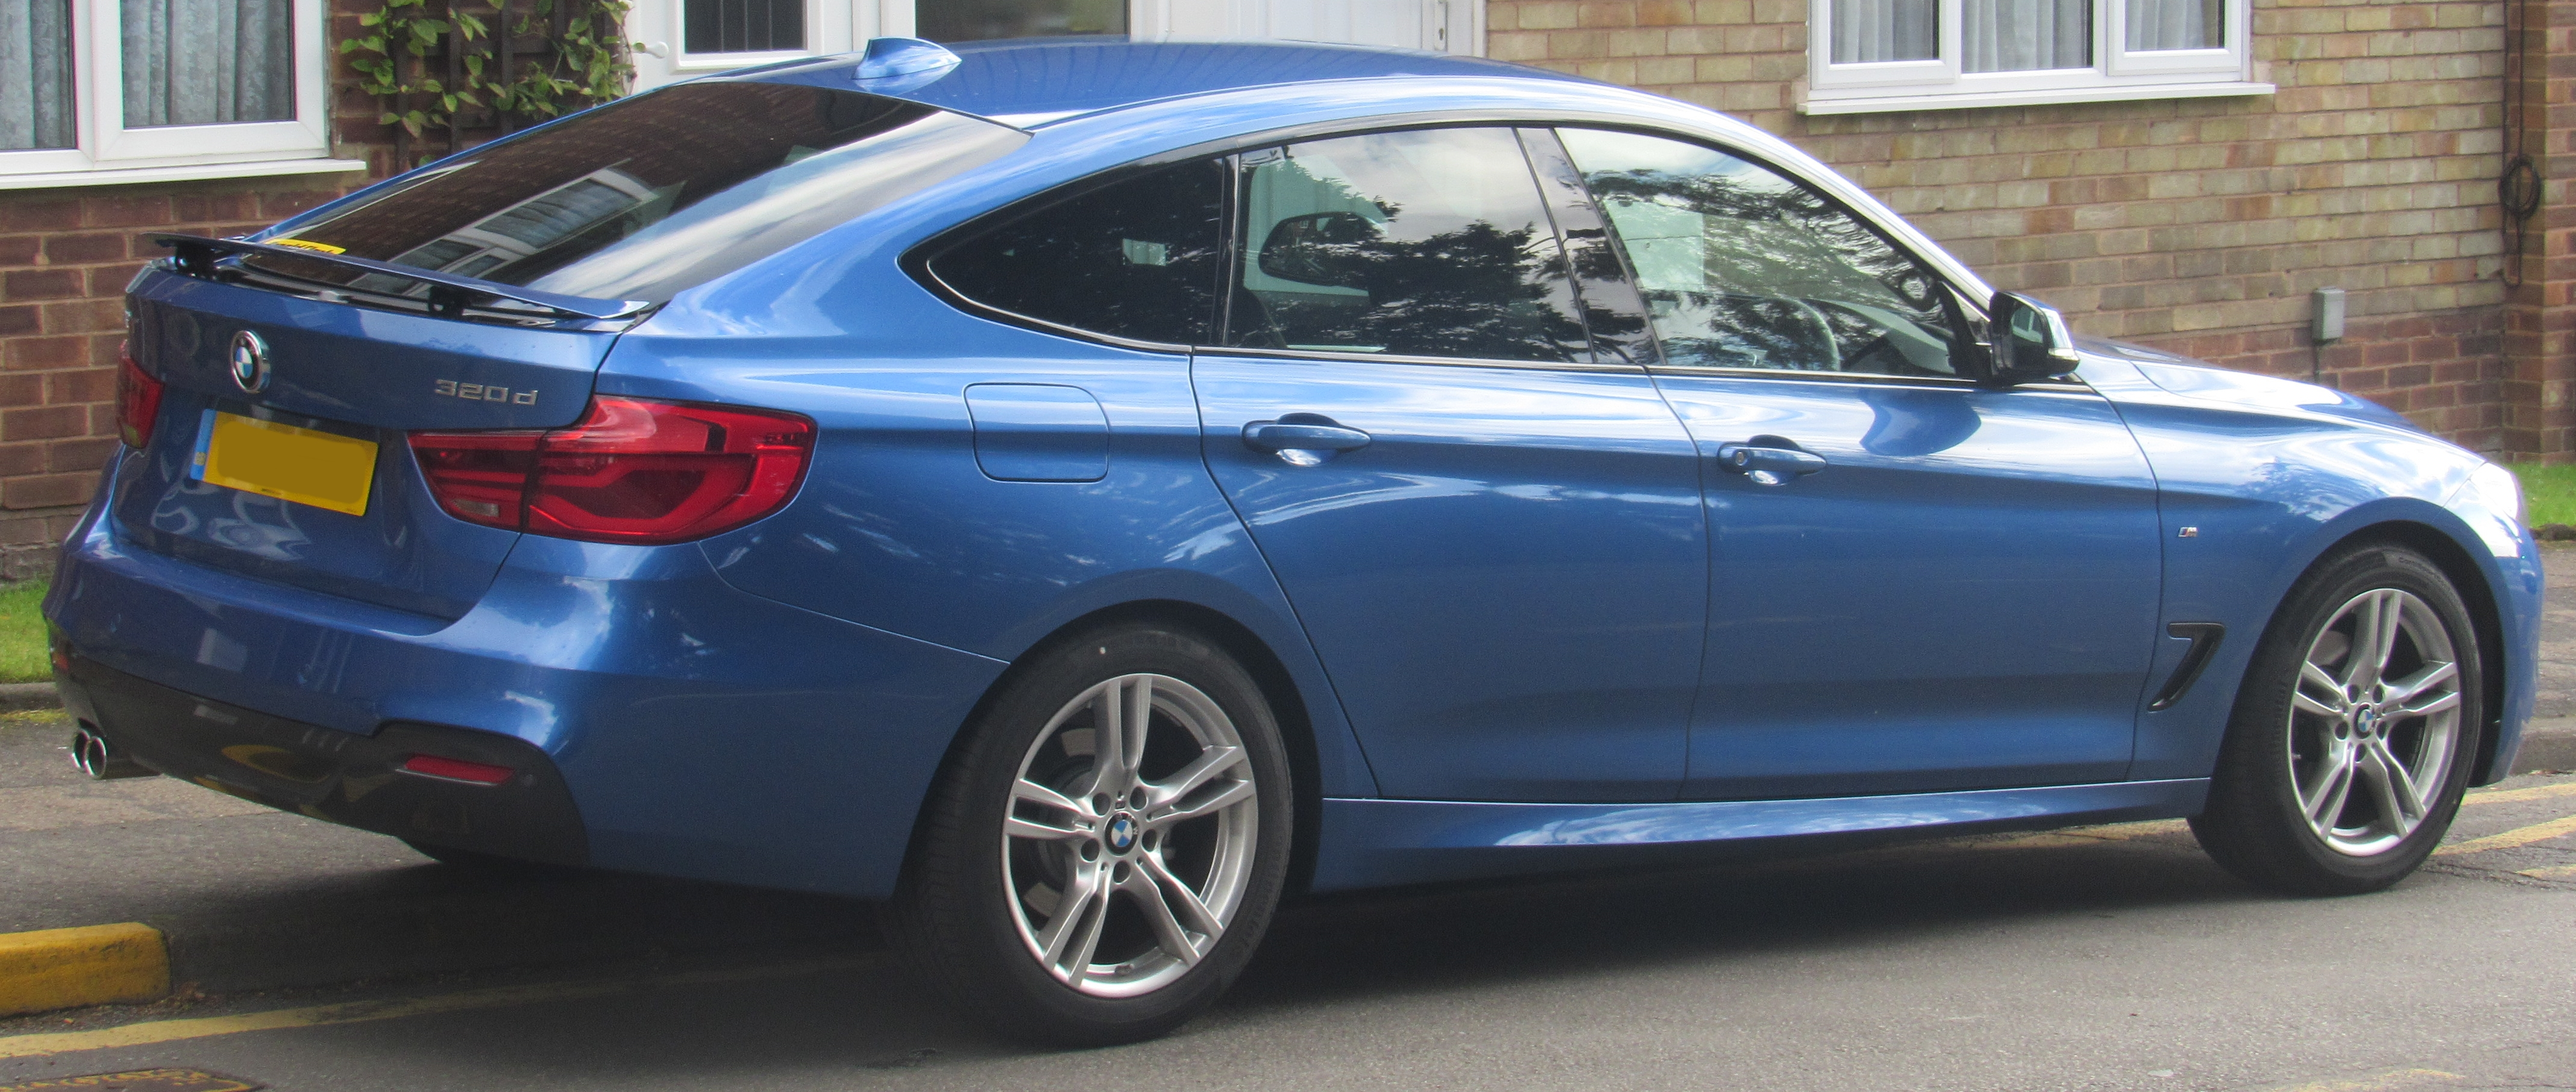 File 2017 Bmw 320d M Sport Gt Automatic 2 0 Jpg Wikimedia Commons